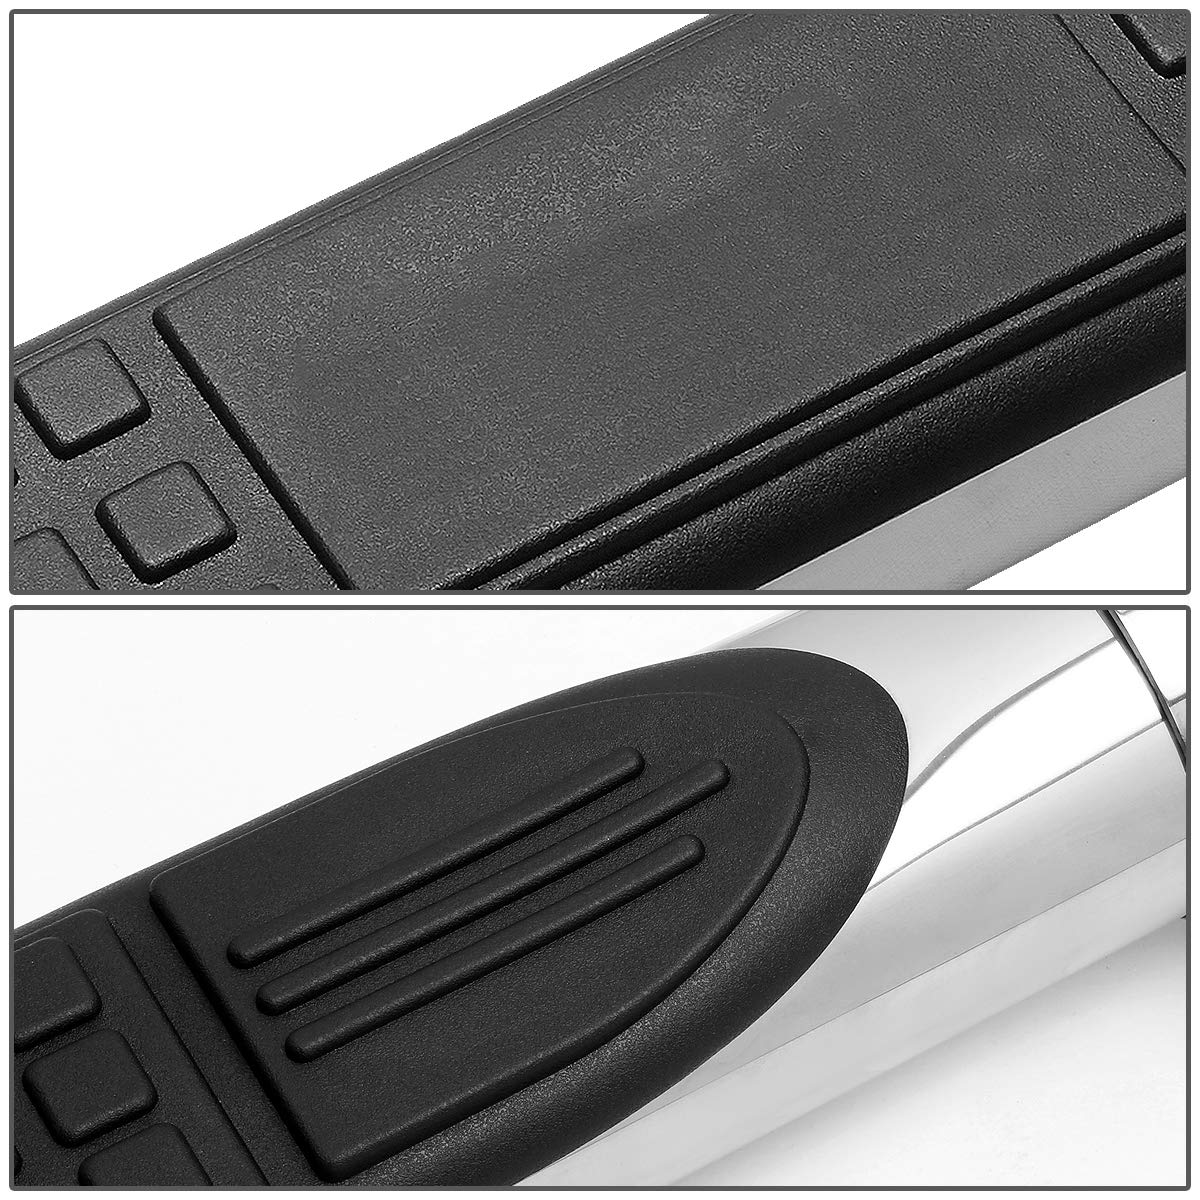 Stainless Steel 3 inches Side Step Nerf Bar Running Board (Chrome) by Auto Dynasty (Image #2)